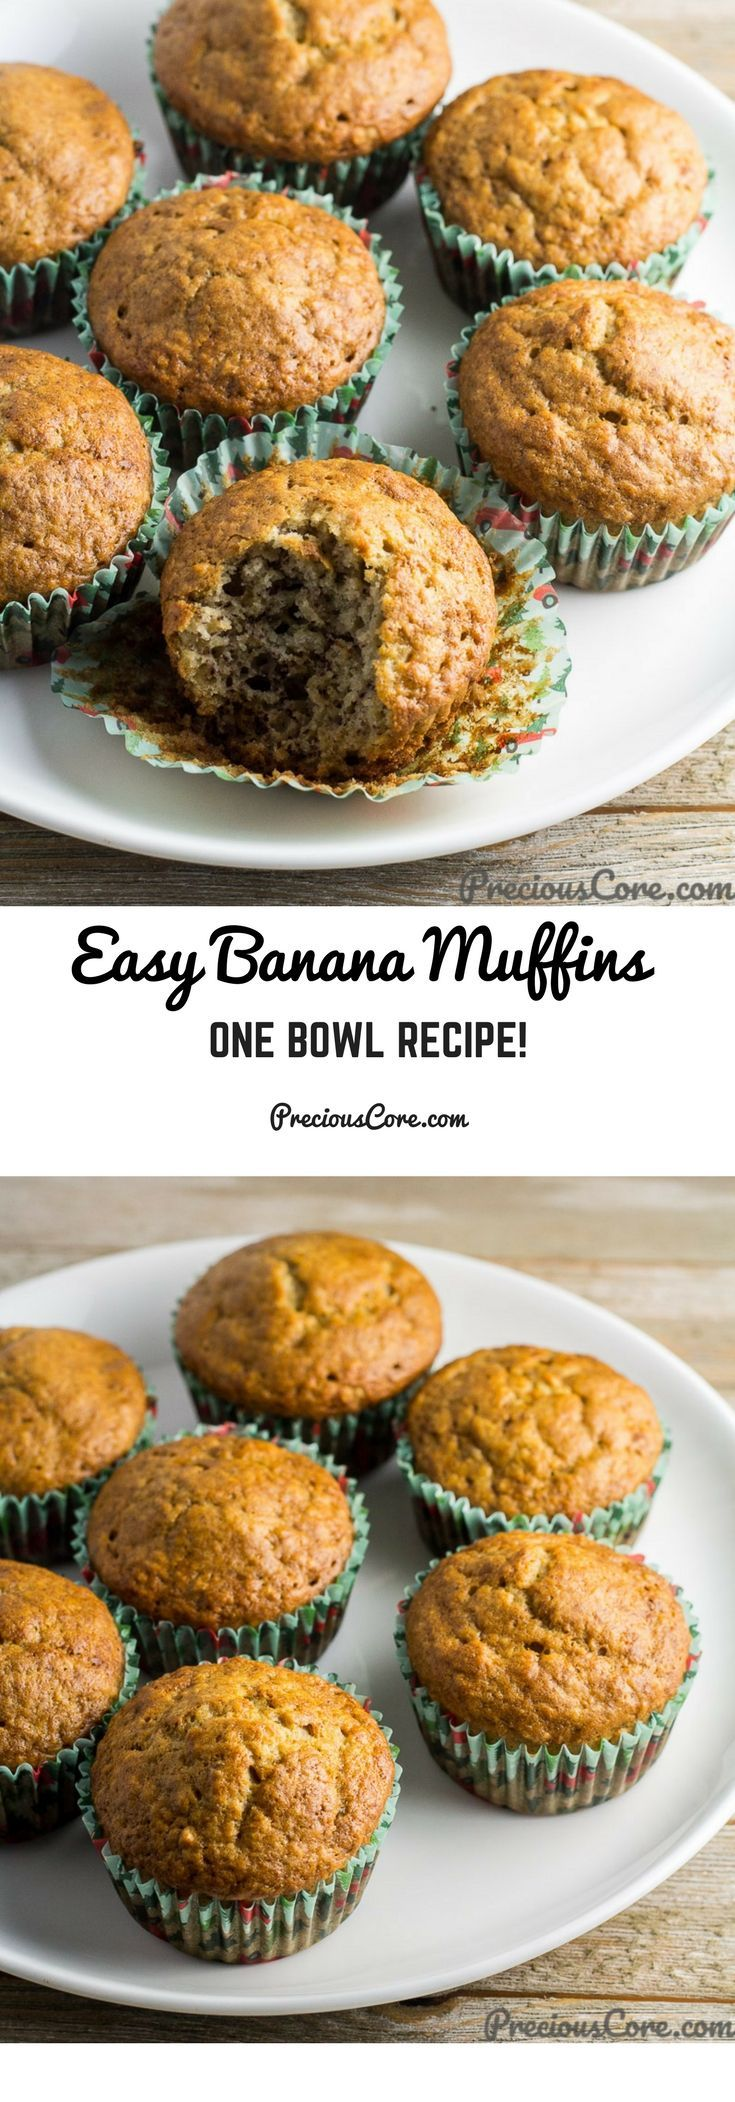 These banana muffins only require one bowl to make! They are great for breakfast, snacking or entertaining. Get the recipe on Precious Core. #breakfast #muffins #bananas #easyrecipes #baking